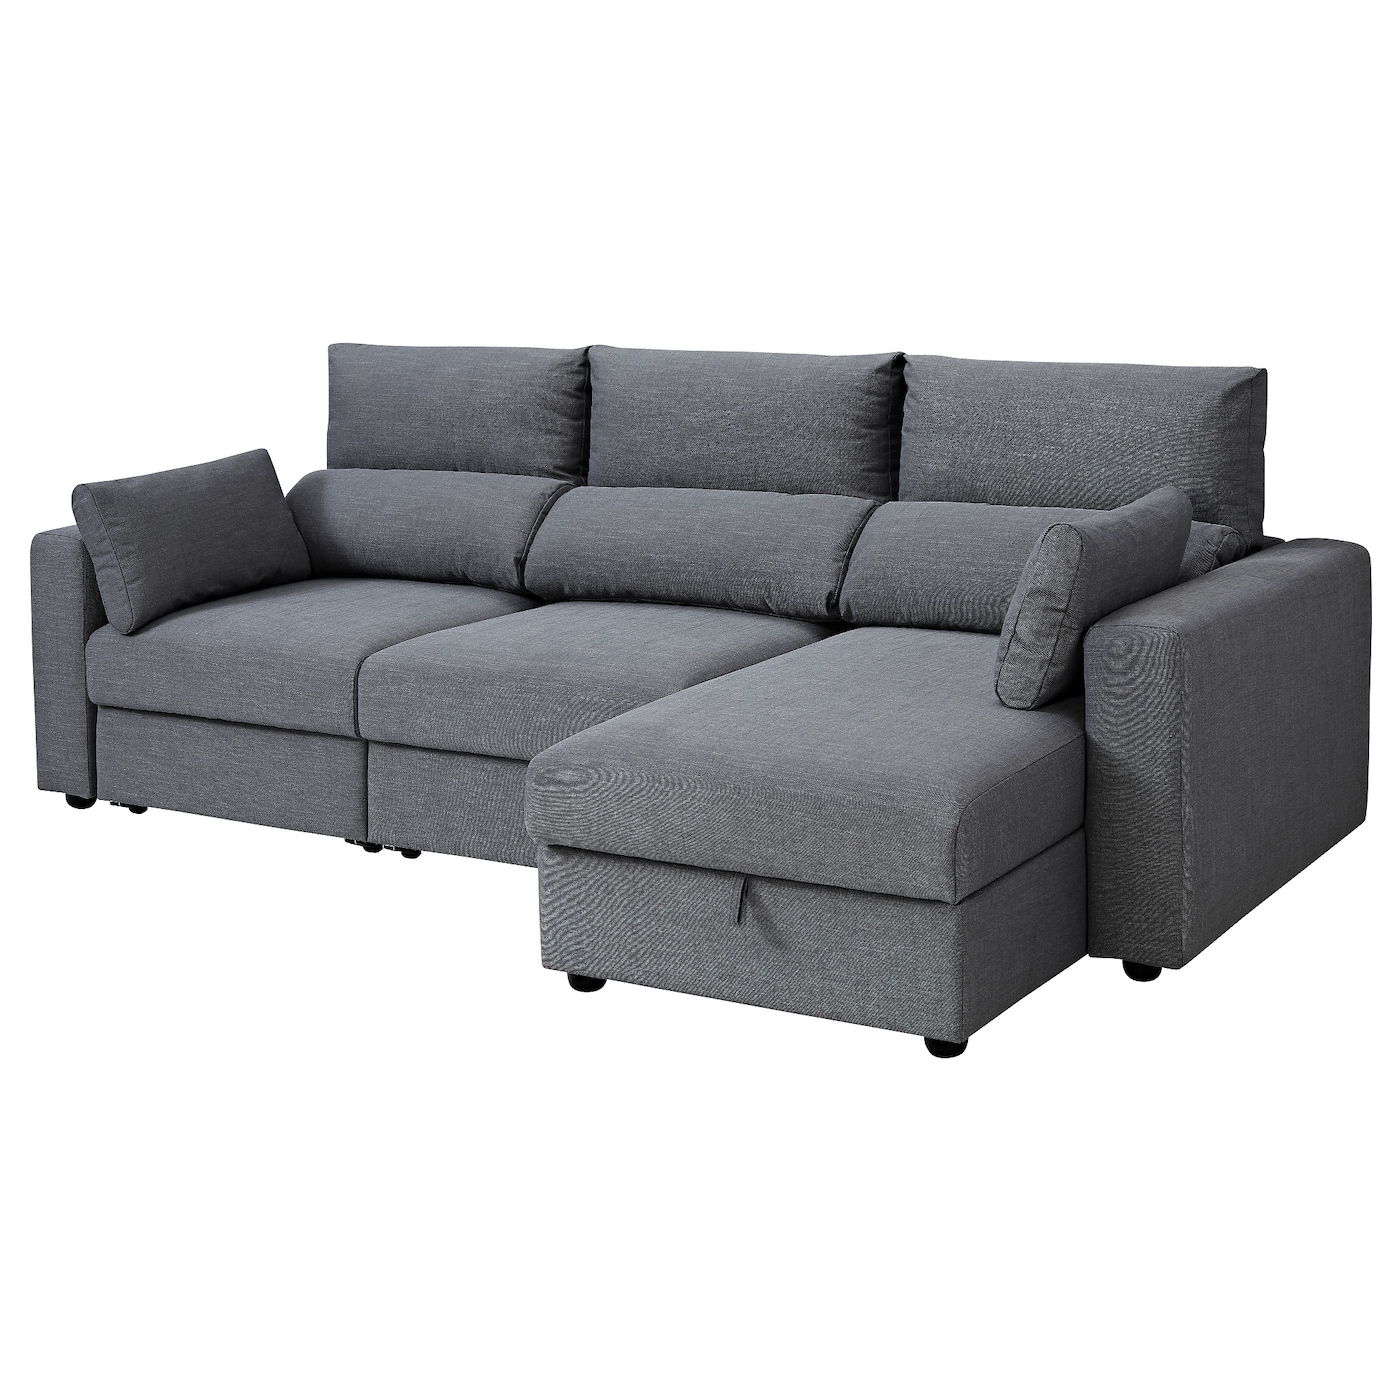 IKEA ESKILSTUNA 3-seat sofa with chaise longue Readily converts into a bed.